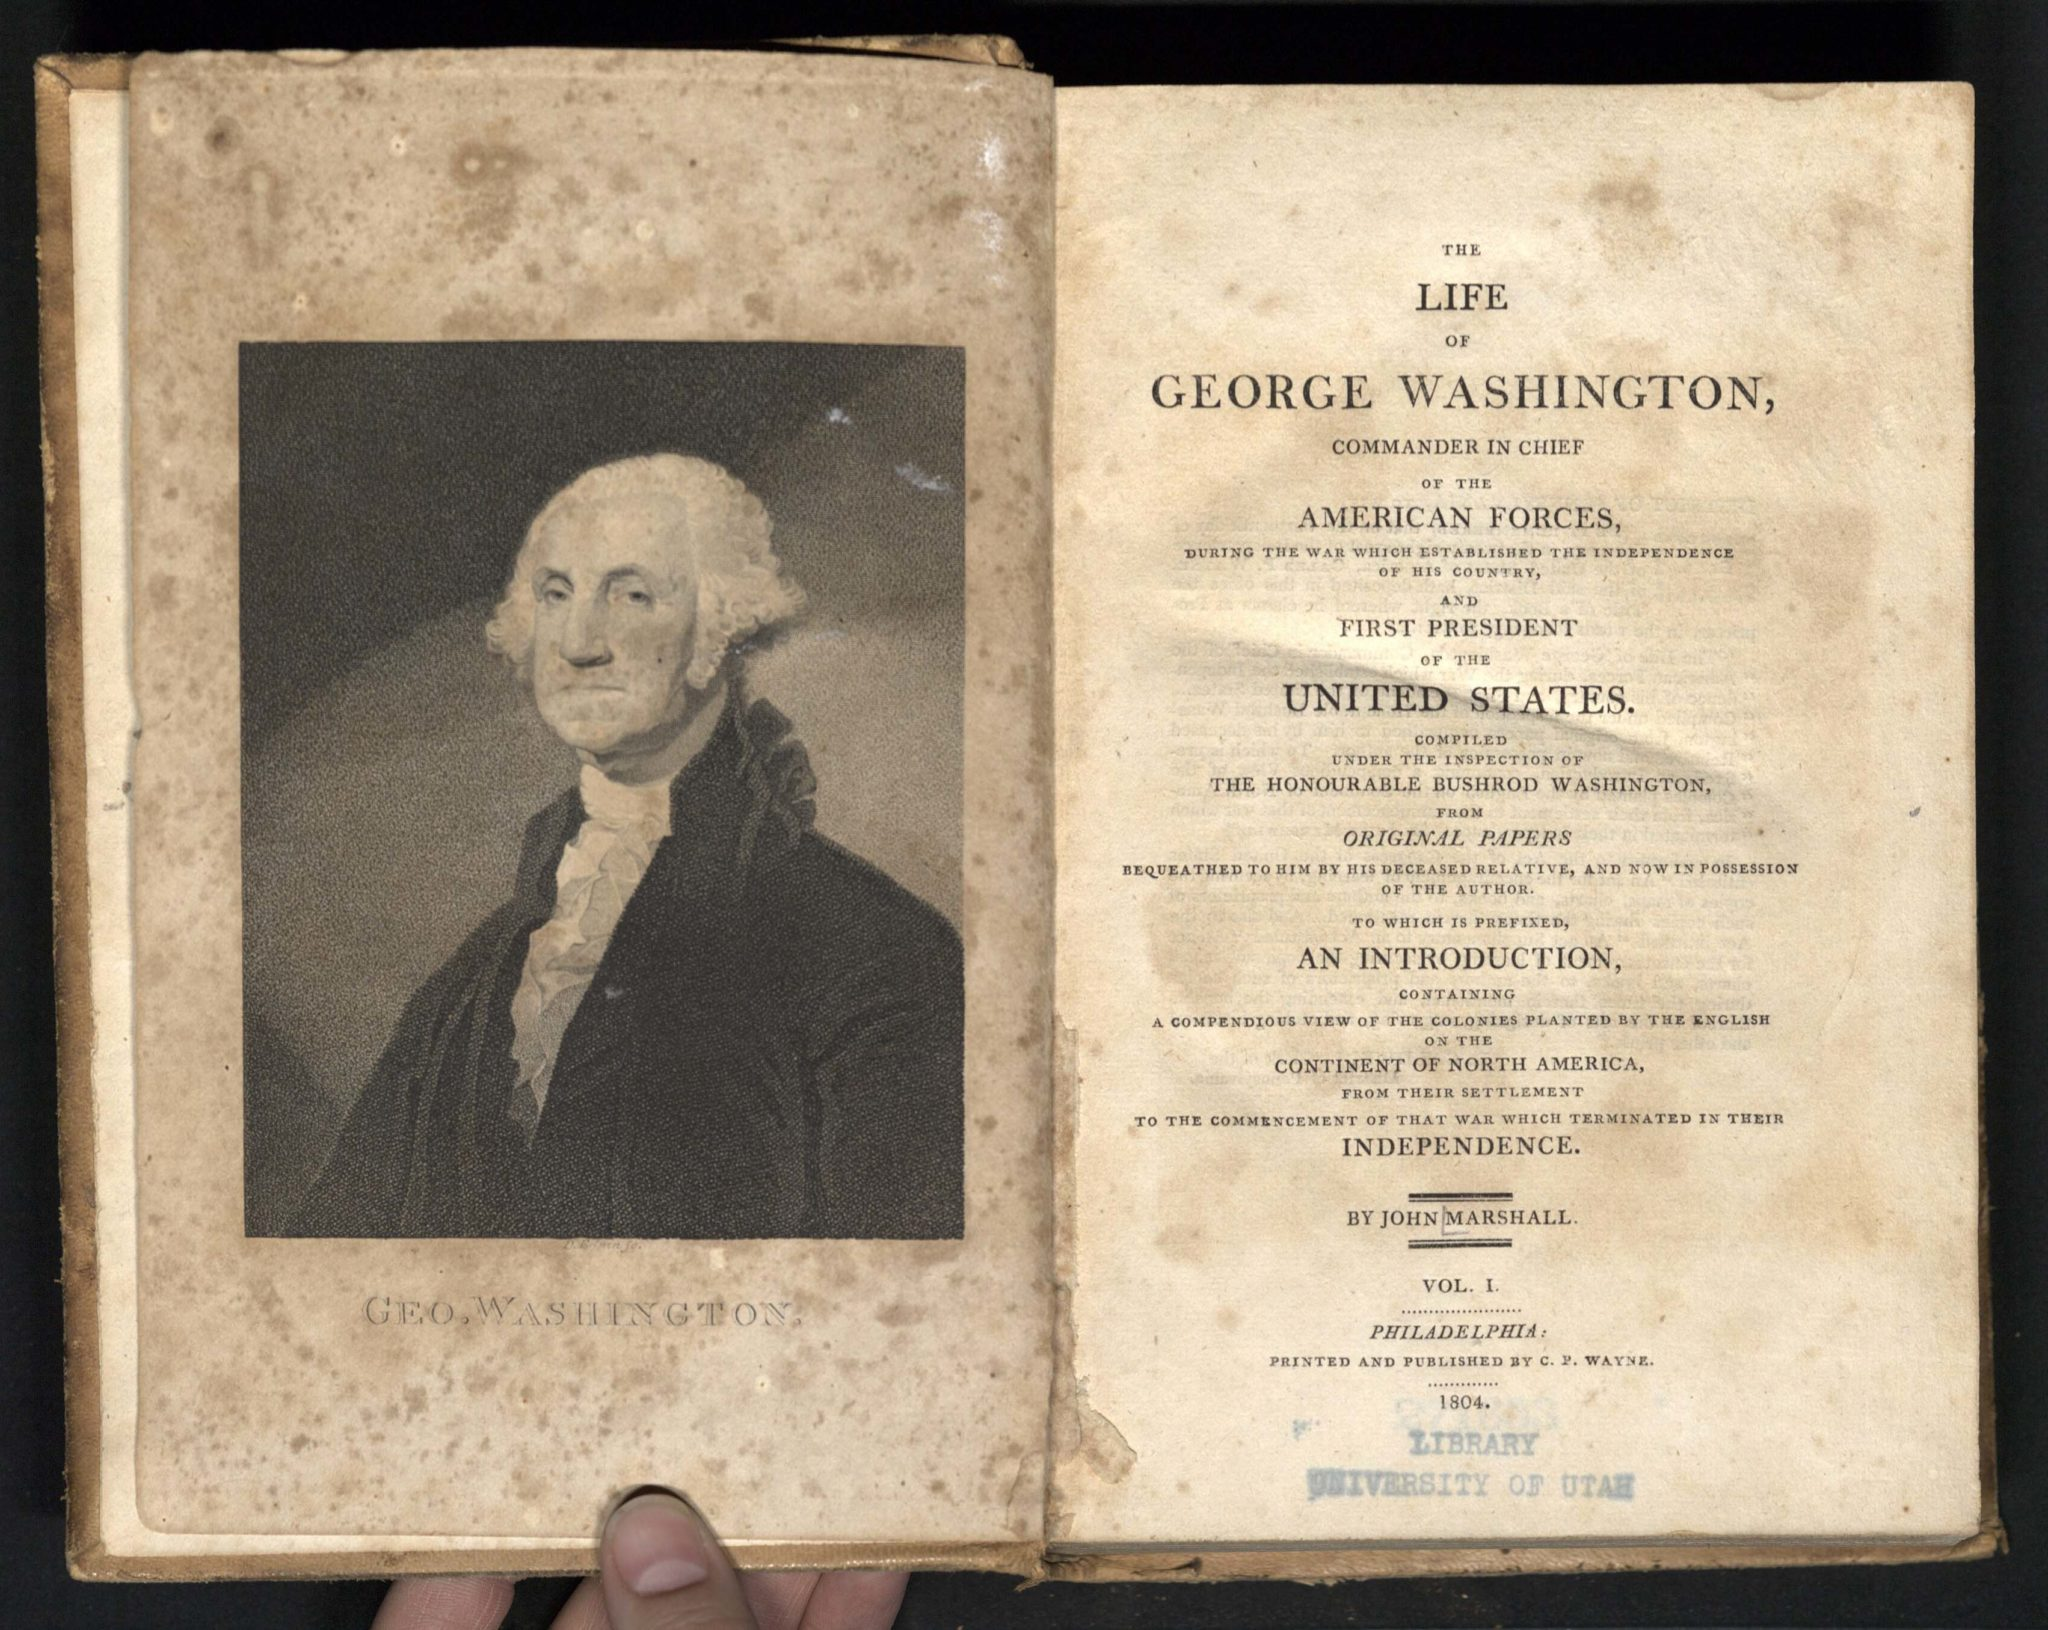 the life and works of george washington The life and memorable actions of george washington:edition (1806) of weems's book the life and memorable actions of george washington (1800.